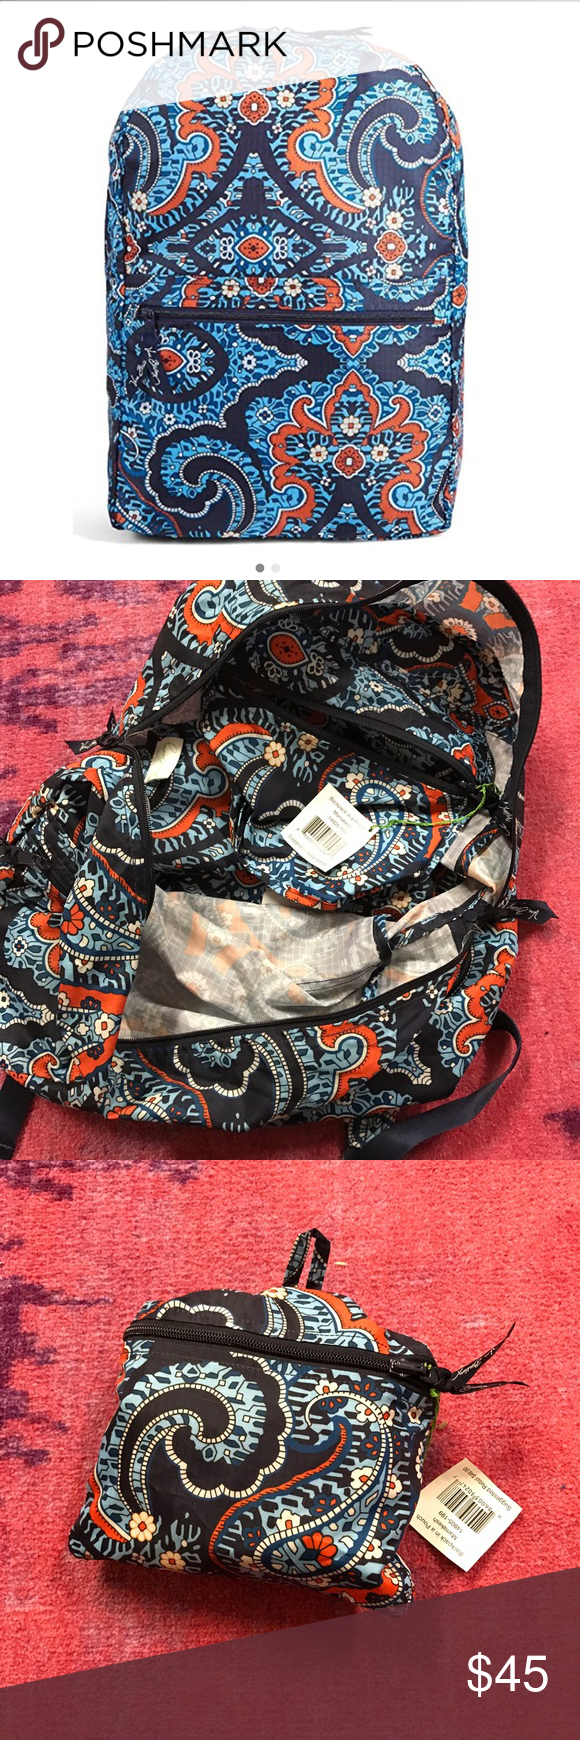 Vera Bradley Backpack in a Pouch Marrakesh NWT Vera Bradley. NWT Marrakesh print. Bag folds into a pouch. Perfect for travel Vera Bradley Bags Backpacks